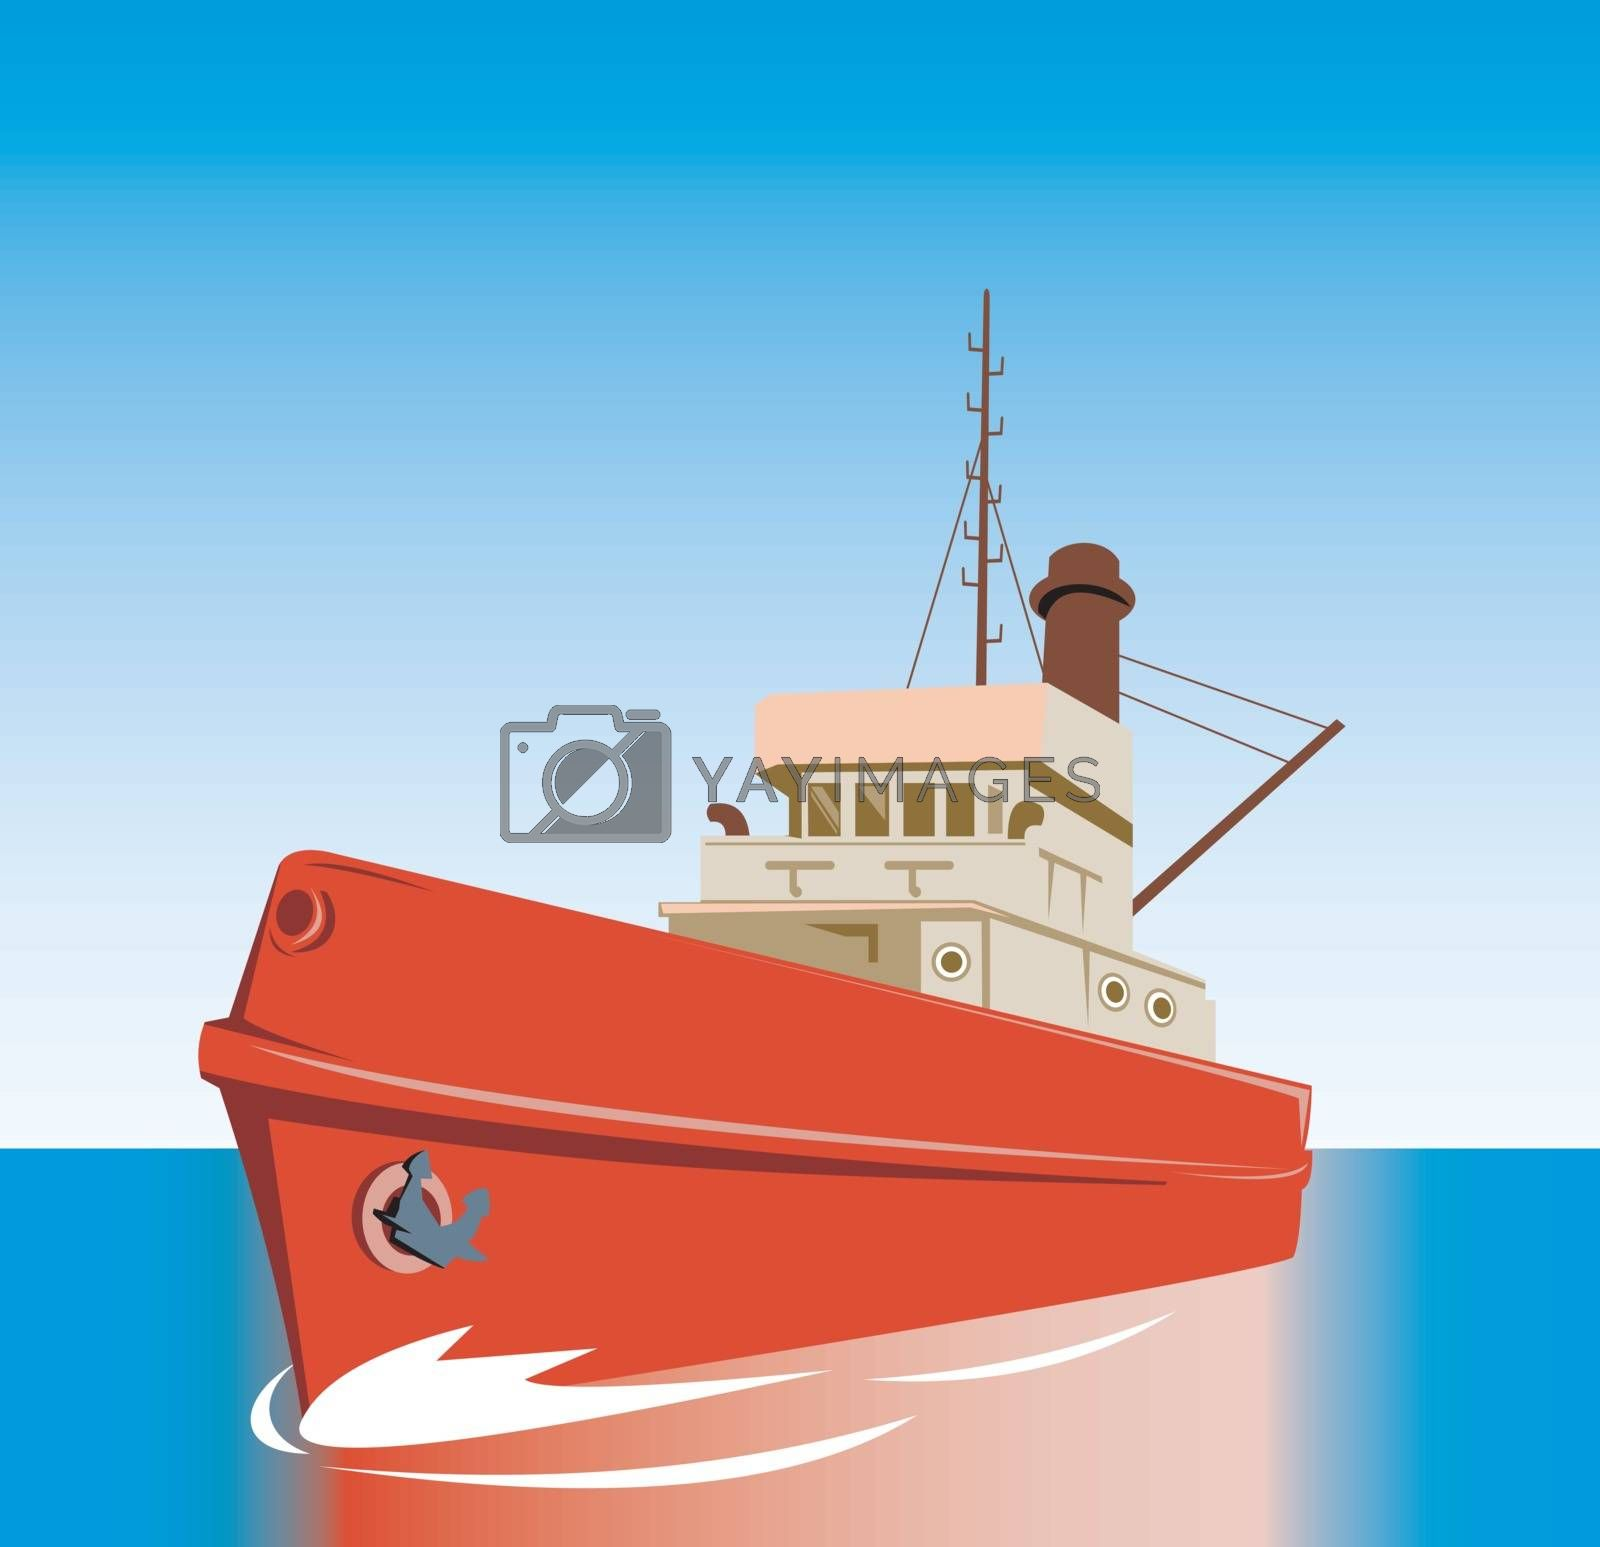 illustration of a tug boat done in retro style